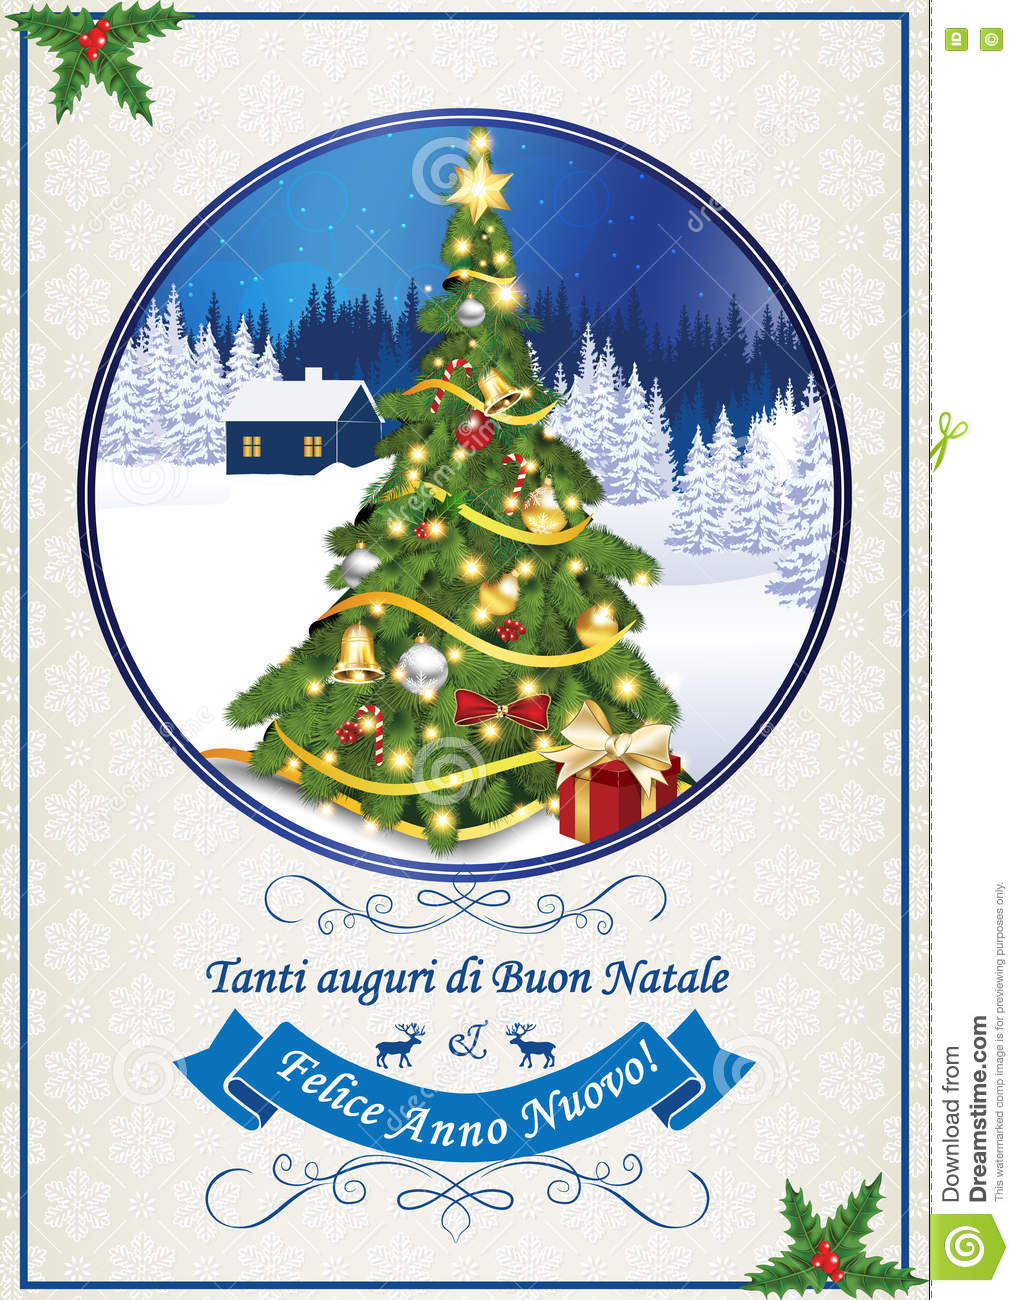 Italian seasons greetings for winter holiday stock illustration italian seasons greetings for winter holiday merry christmas and happy new year tanti auguri di buon natale felice anno nuovo print colors used m4hsunfo